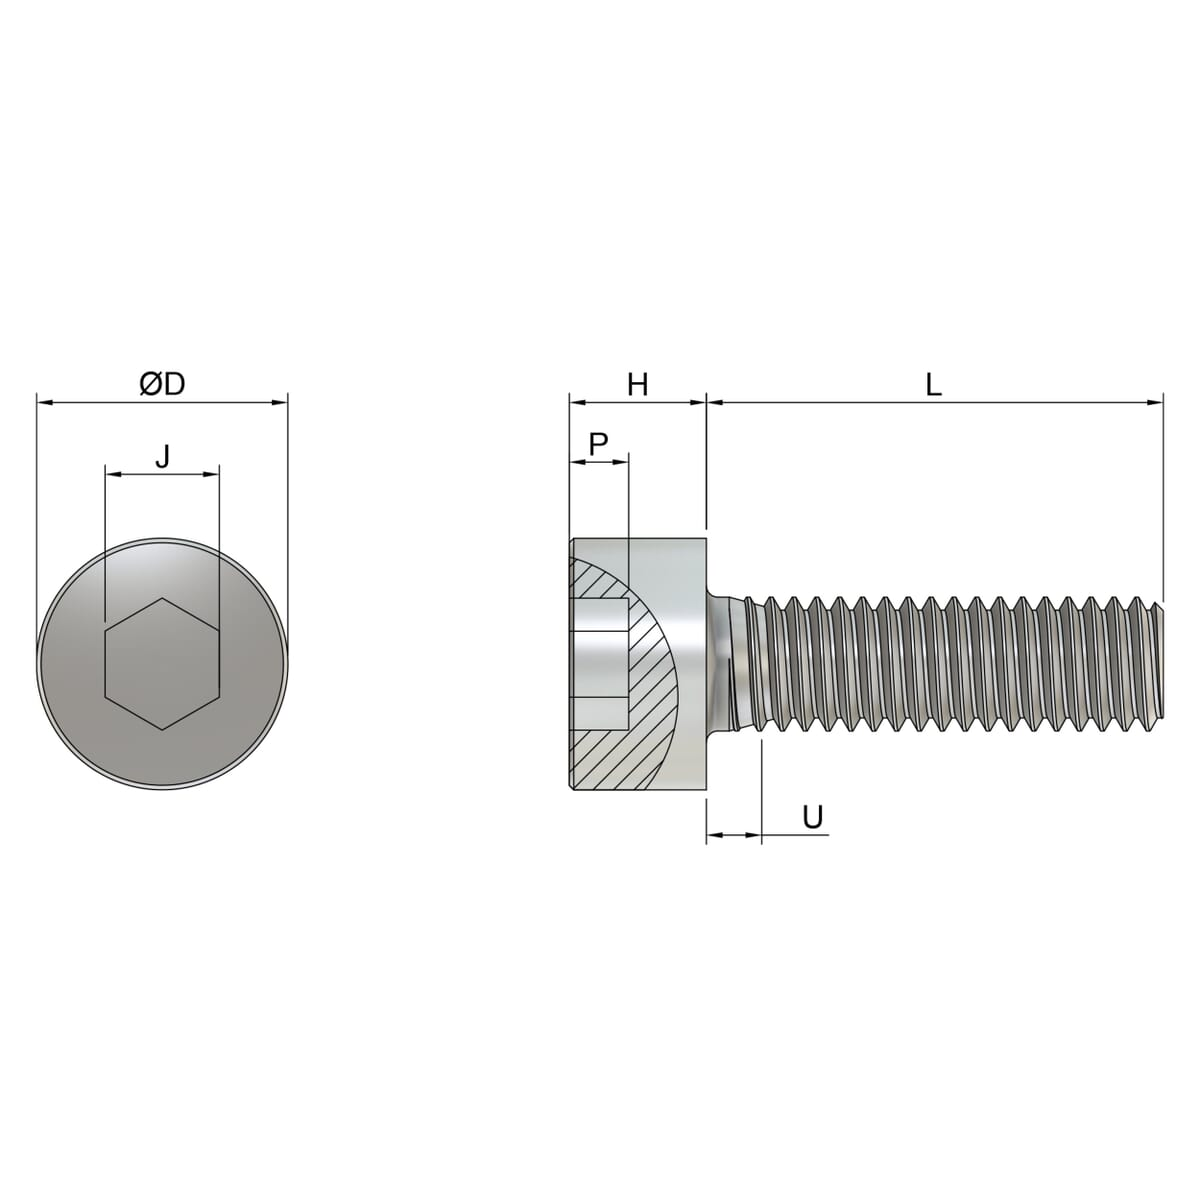 M5 x 10mm Full Thread Cap Head Screws (DIN 912) - High Tensile Stainless Steel (A4-80) Drawing